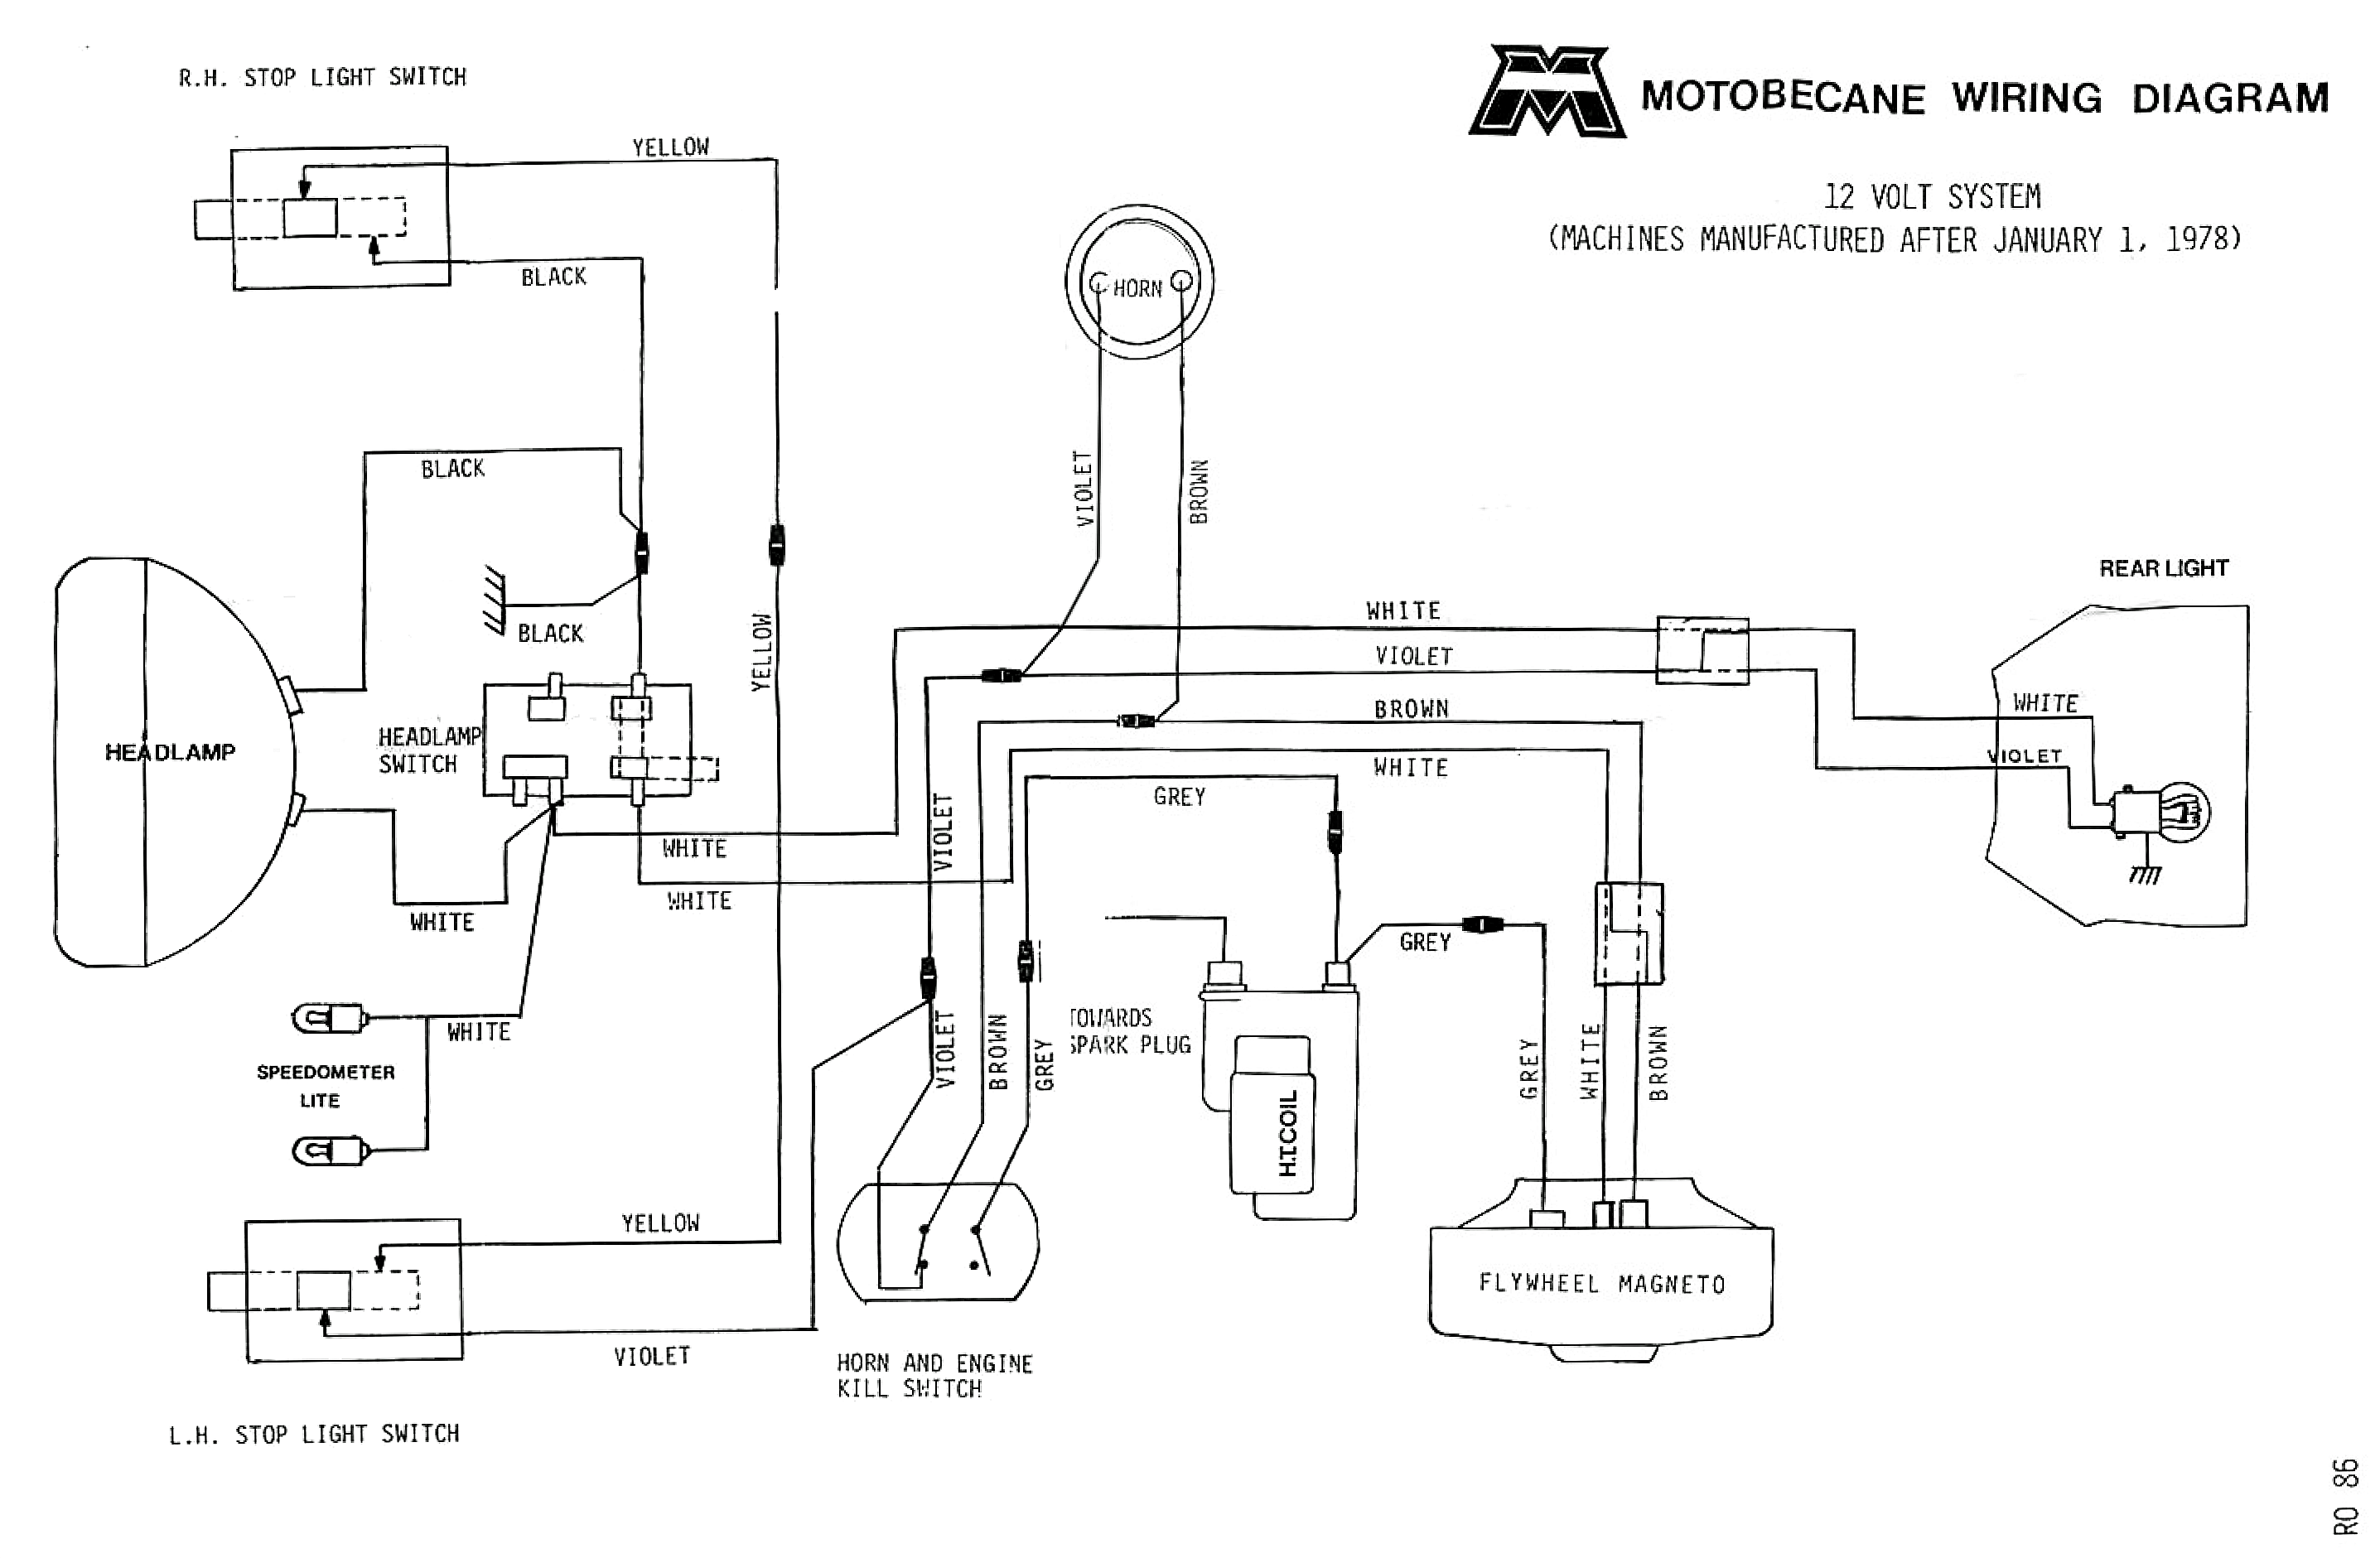 Motobecane V Wiring Diagram on Case Diesel Tractor Ignition Wiring Diagram